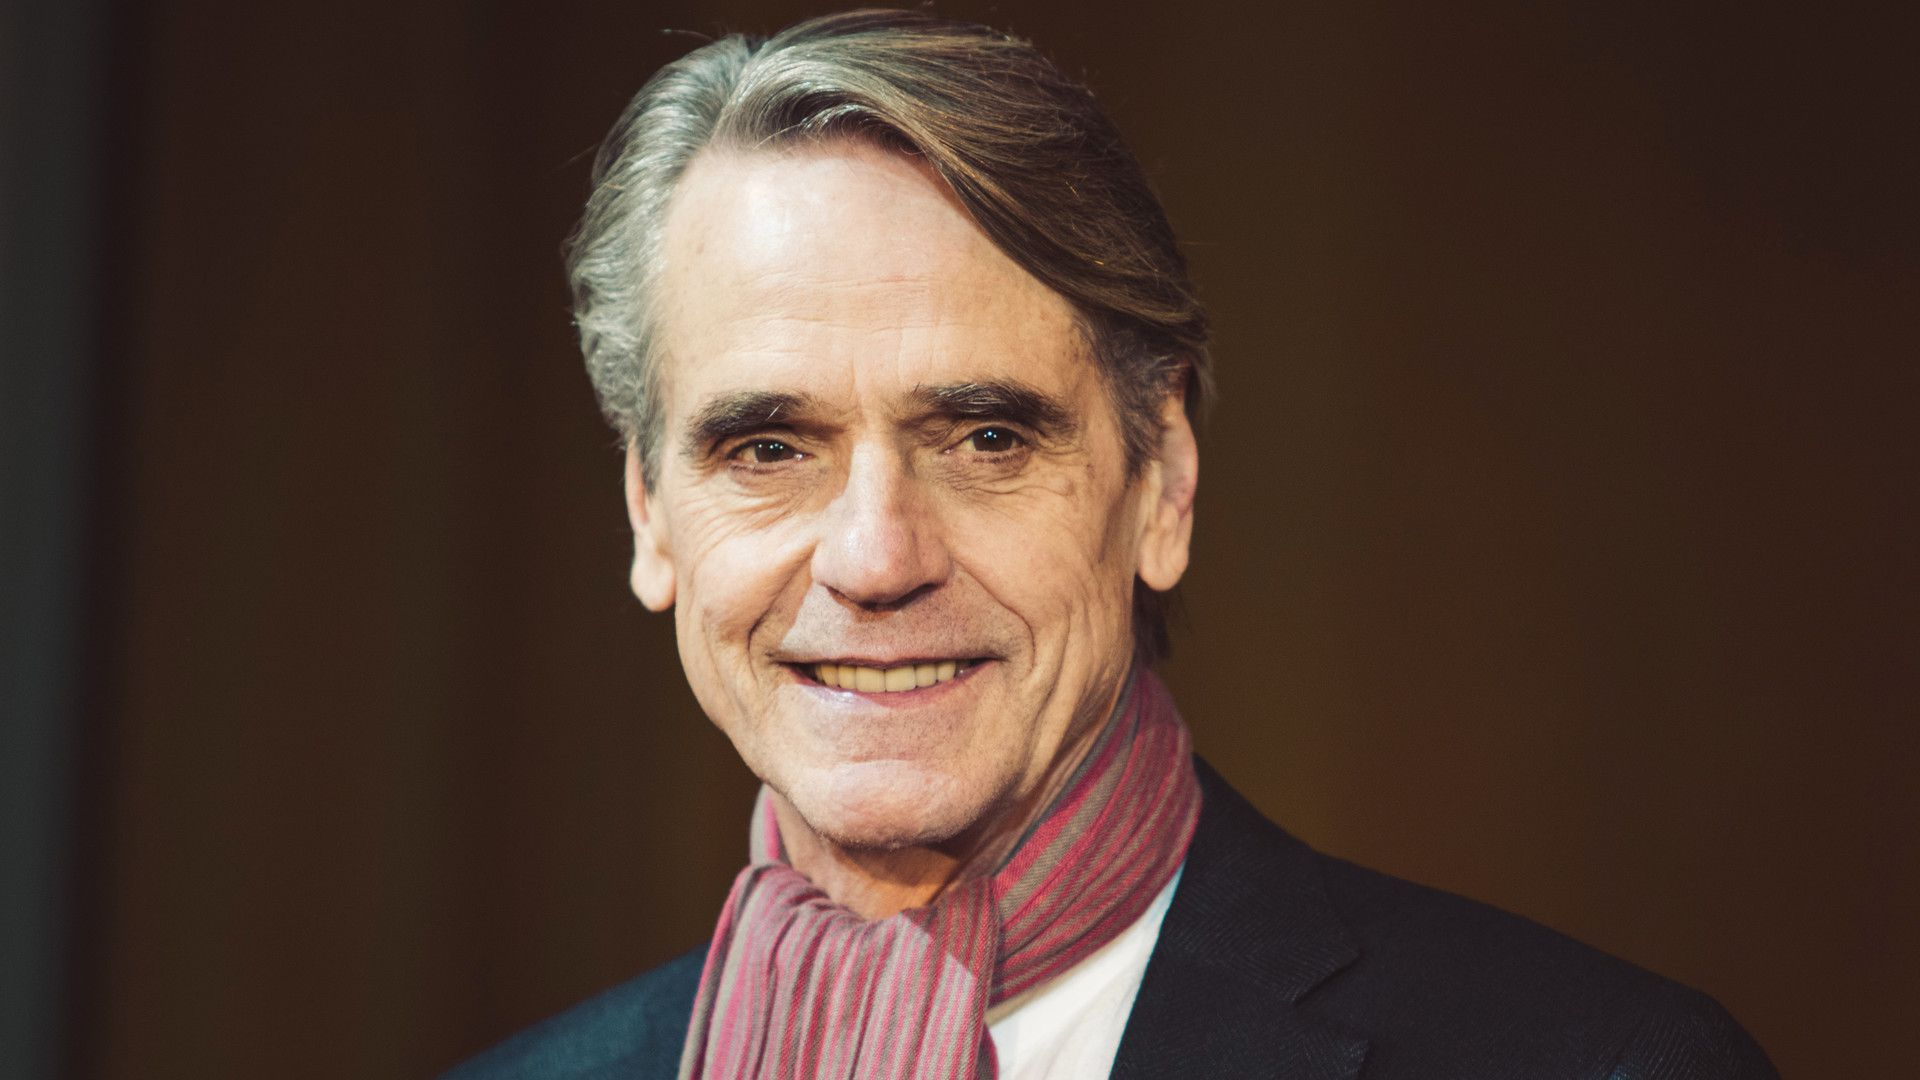 Jeremy Irons Wallpapers Backgrounds